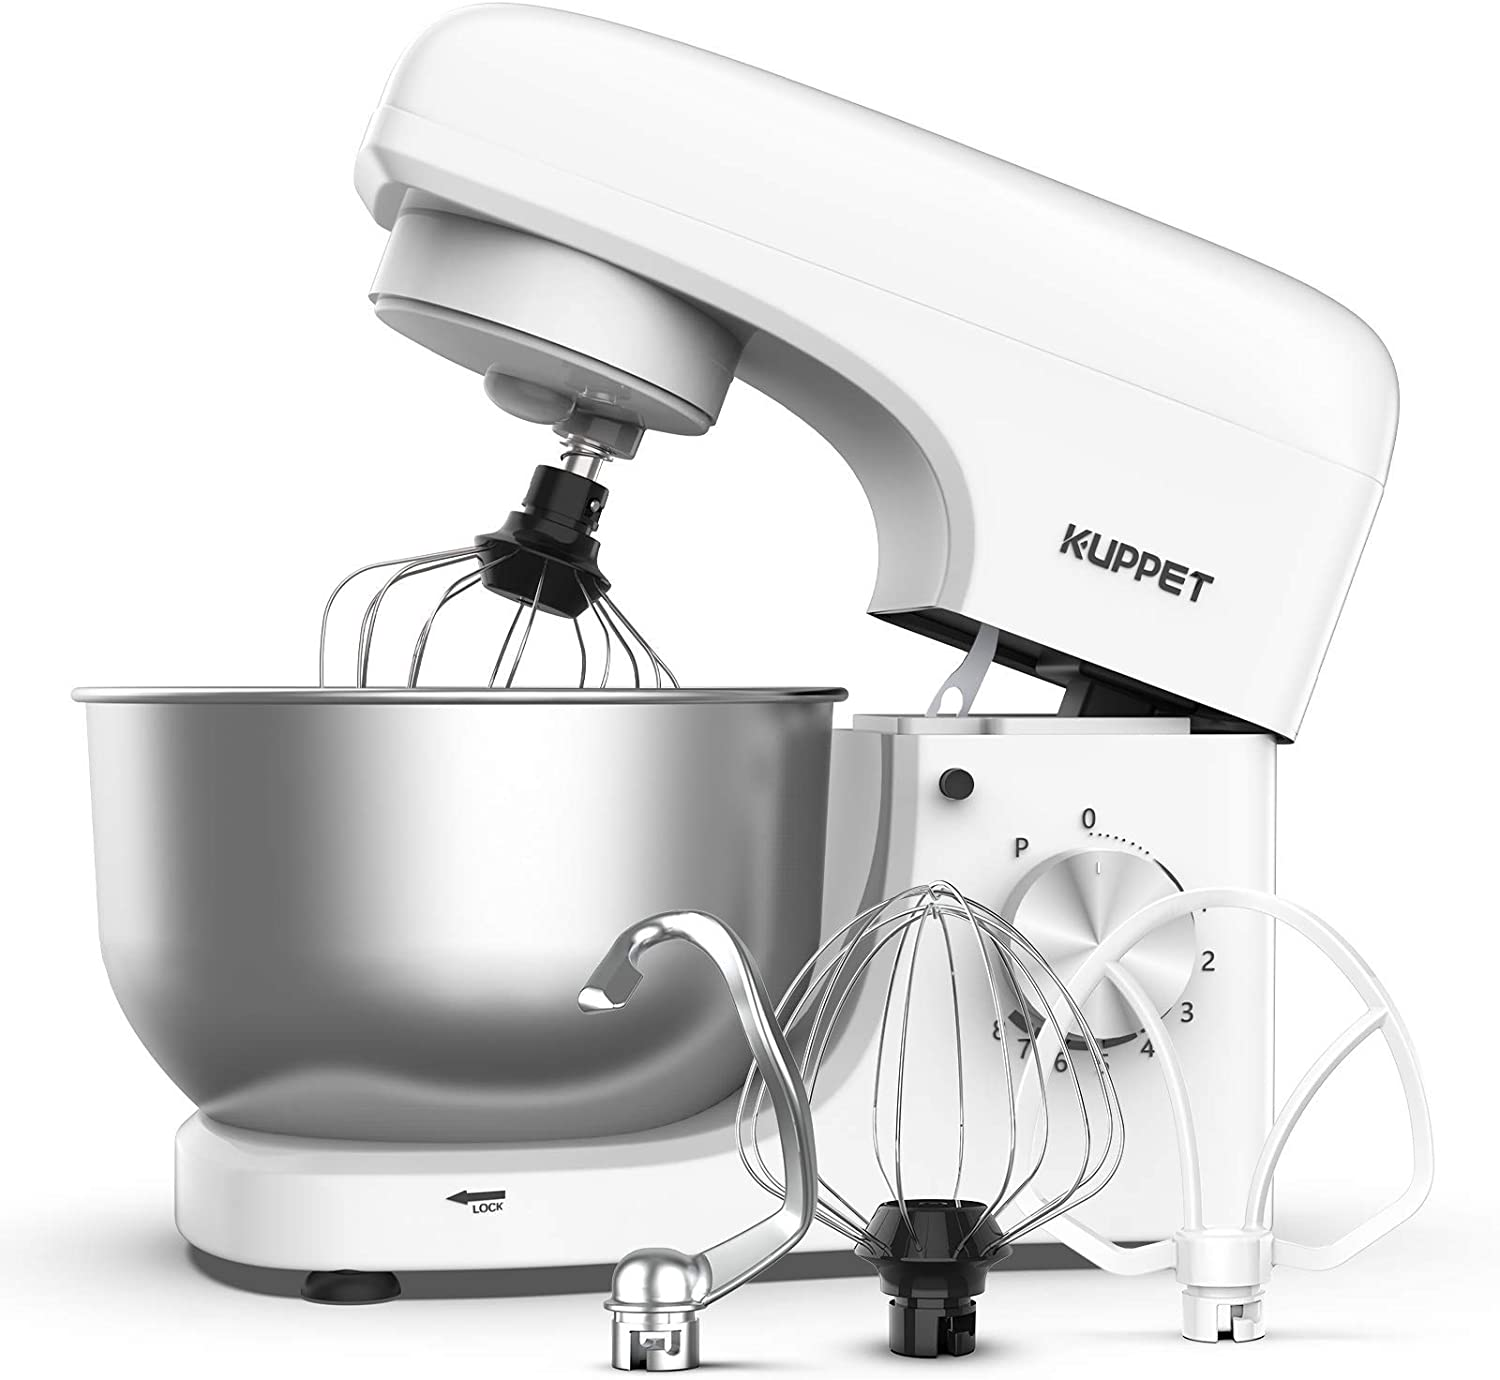 KUPPET Stand Mixer, 8-Speed Tilt-Head Electric Food Stand Mixer with Dough Hook, Wire Whip & Beater, Pouring Shield, 4.7QT Stainless Steel Bowl - White